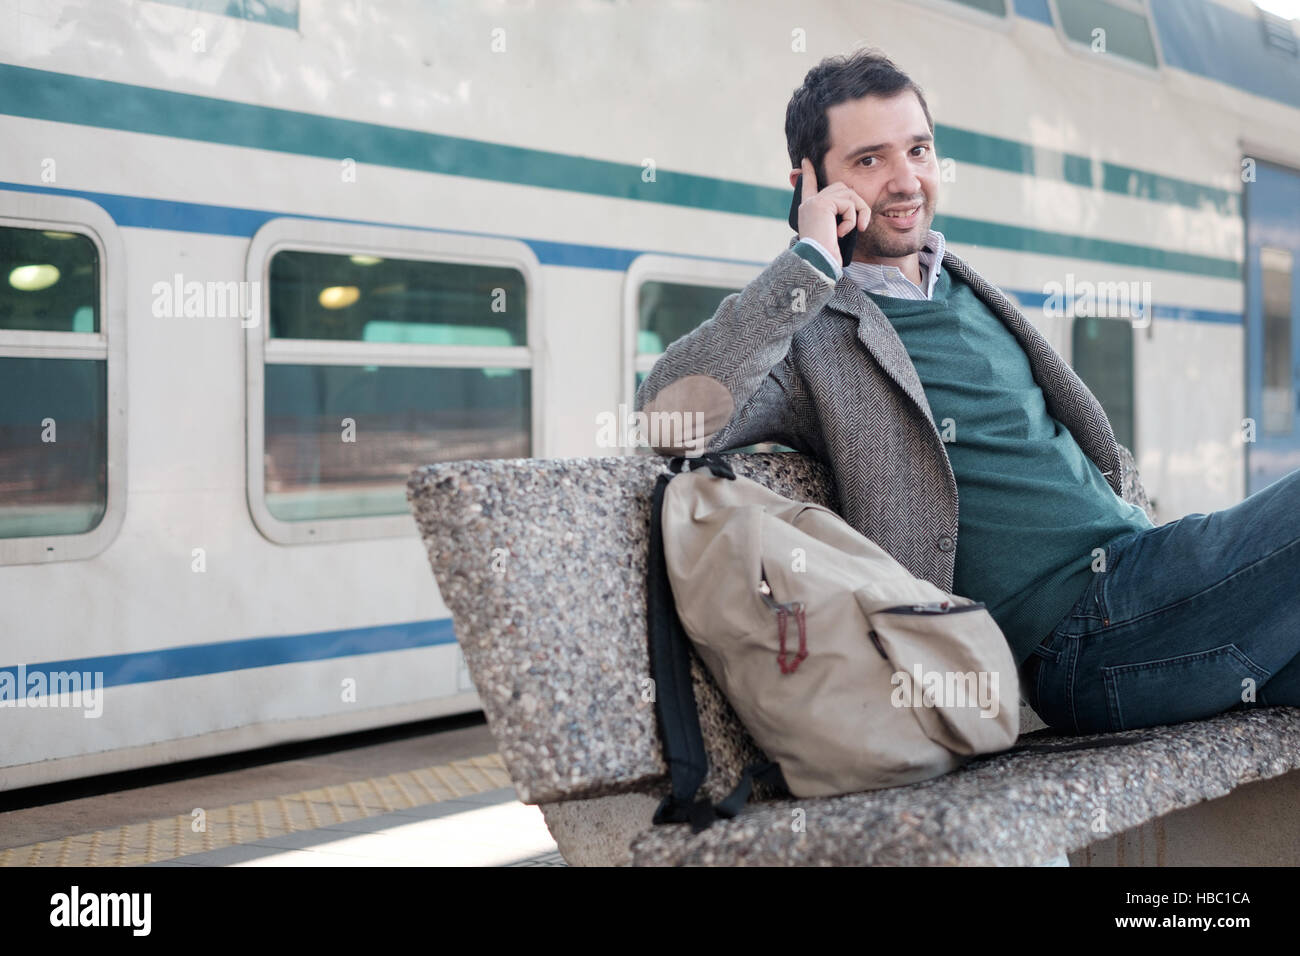 Man talking on the phone in a train station platform - Stock Image